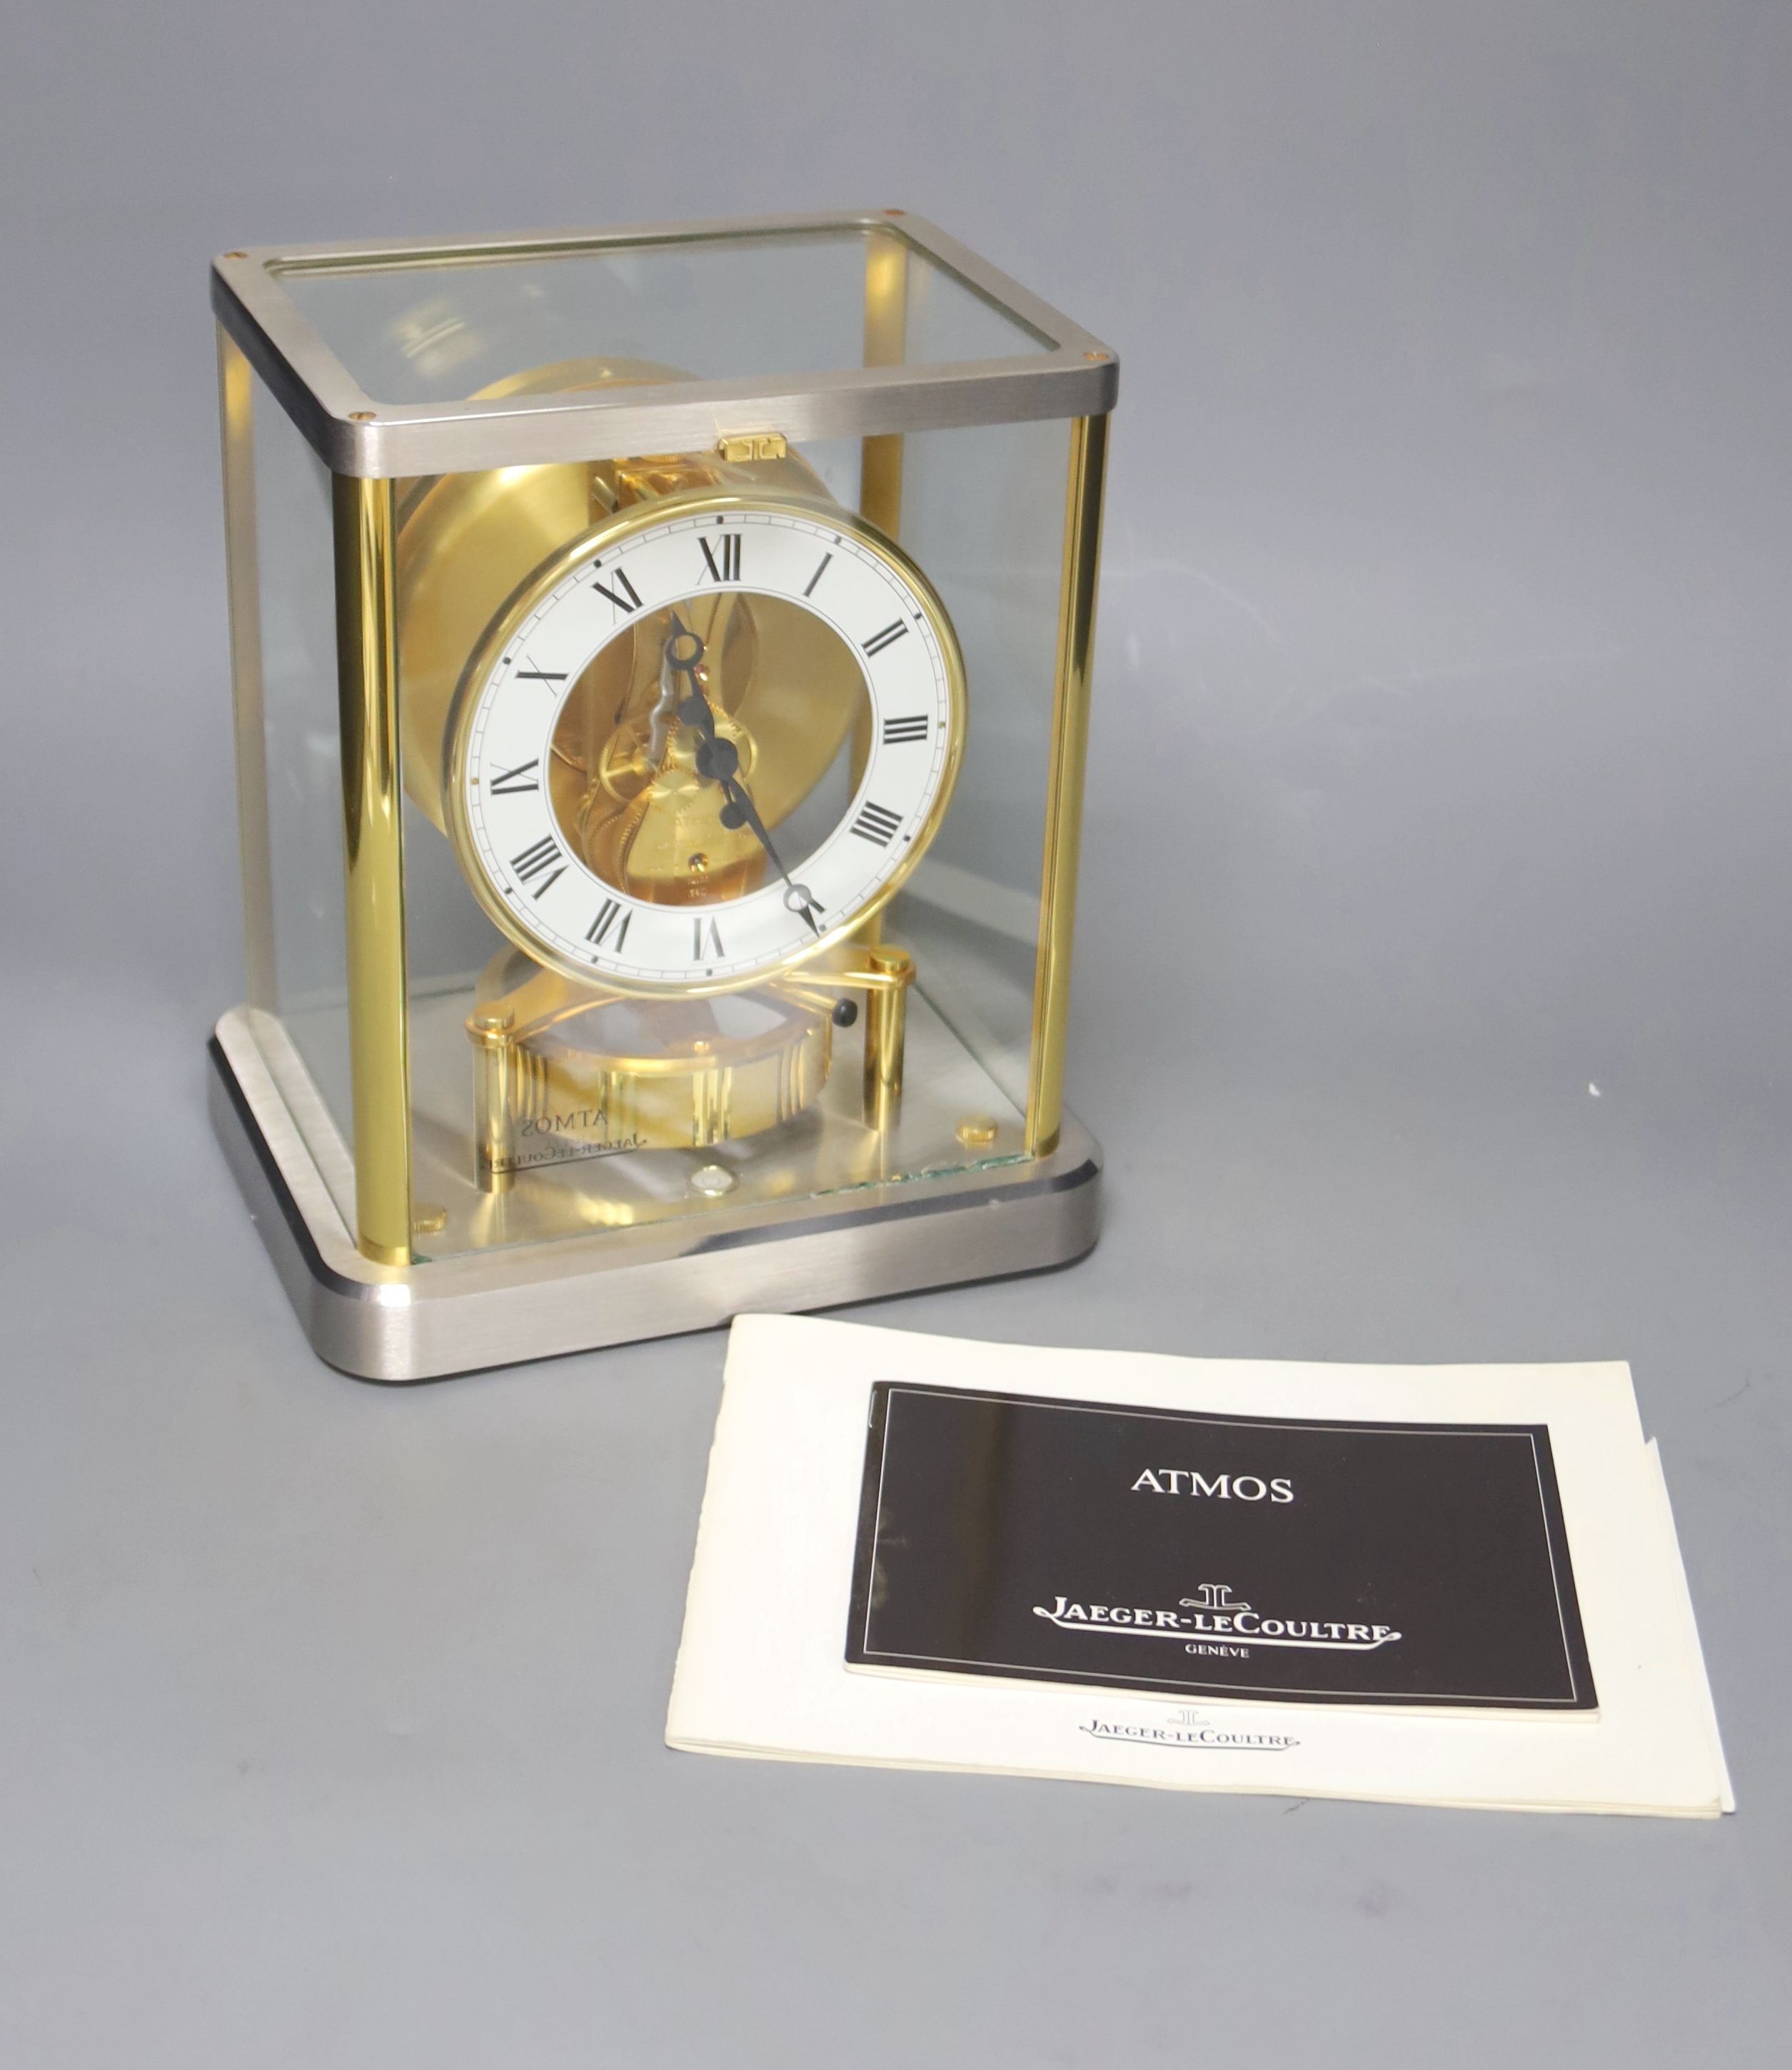 A Jaeger le Coultre Atmos mantel clock, in silvered and gilt metal glazed panelled case, height